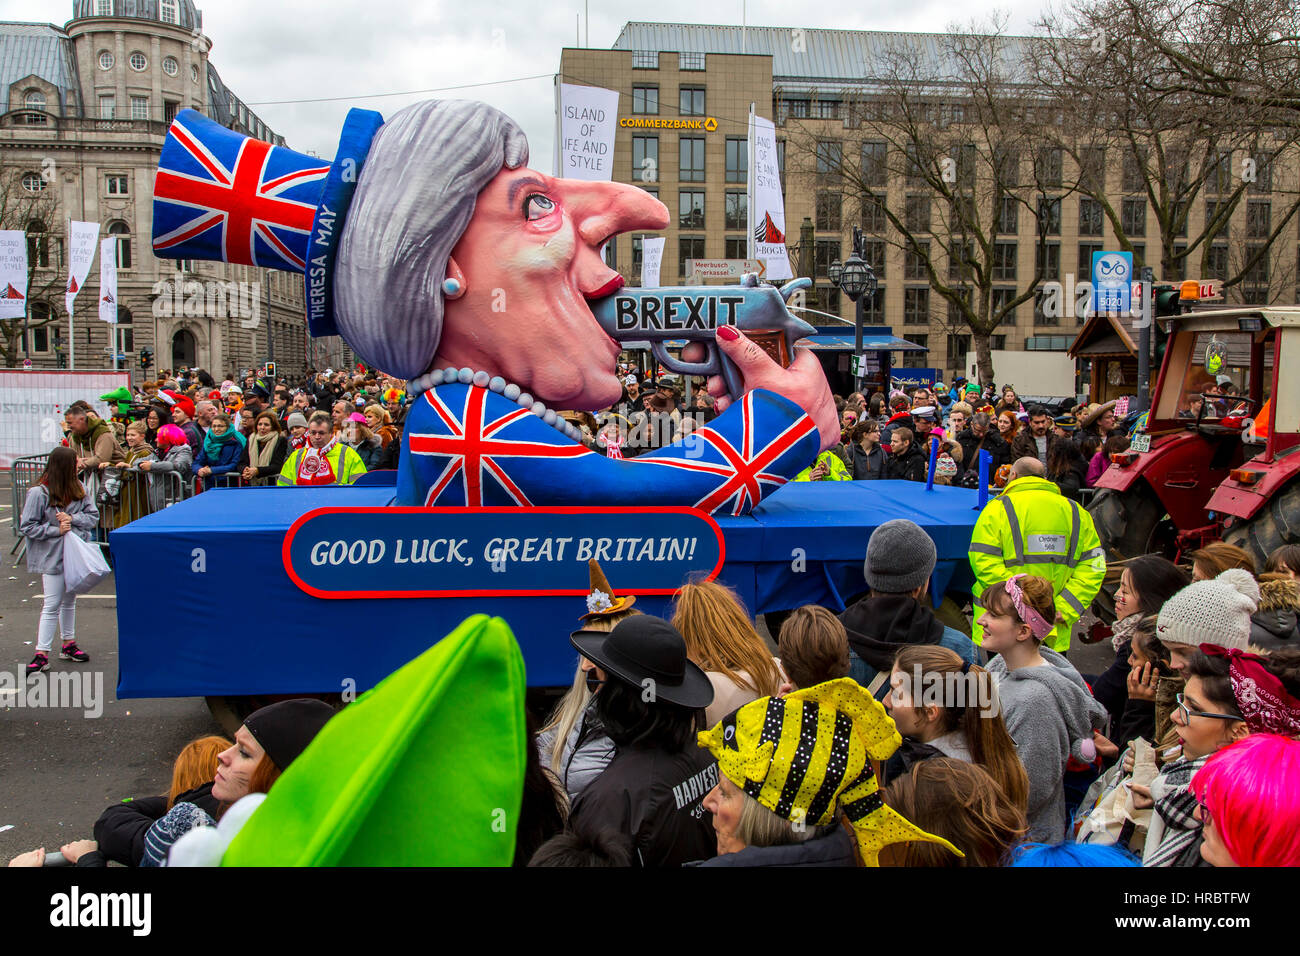 German Carnival parade in DŸsseldorf, Carnival floats designed as political caricatures, suicide by Brexit, British - Stock Image